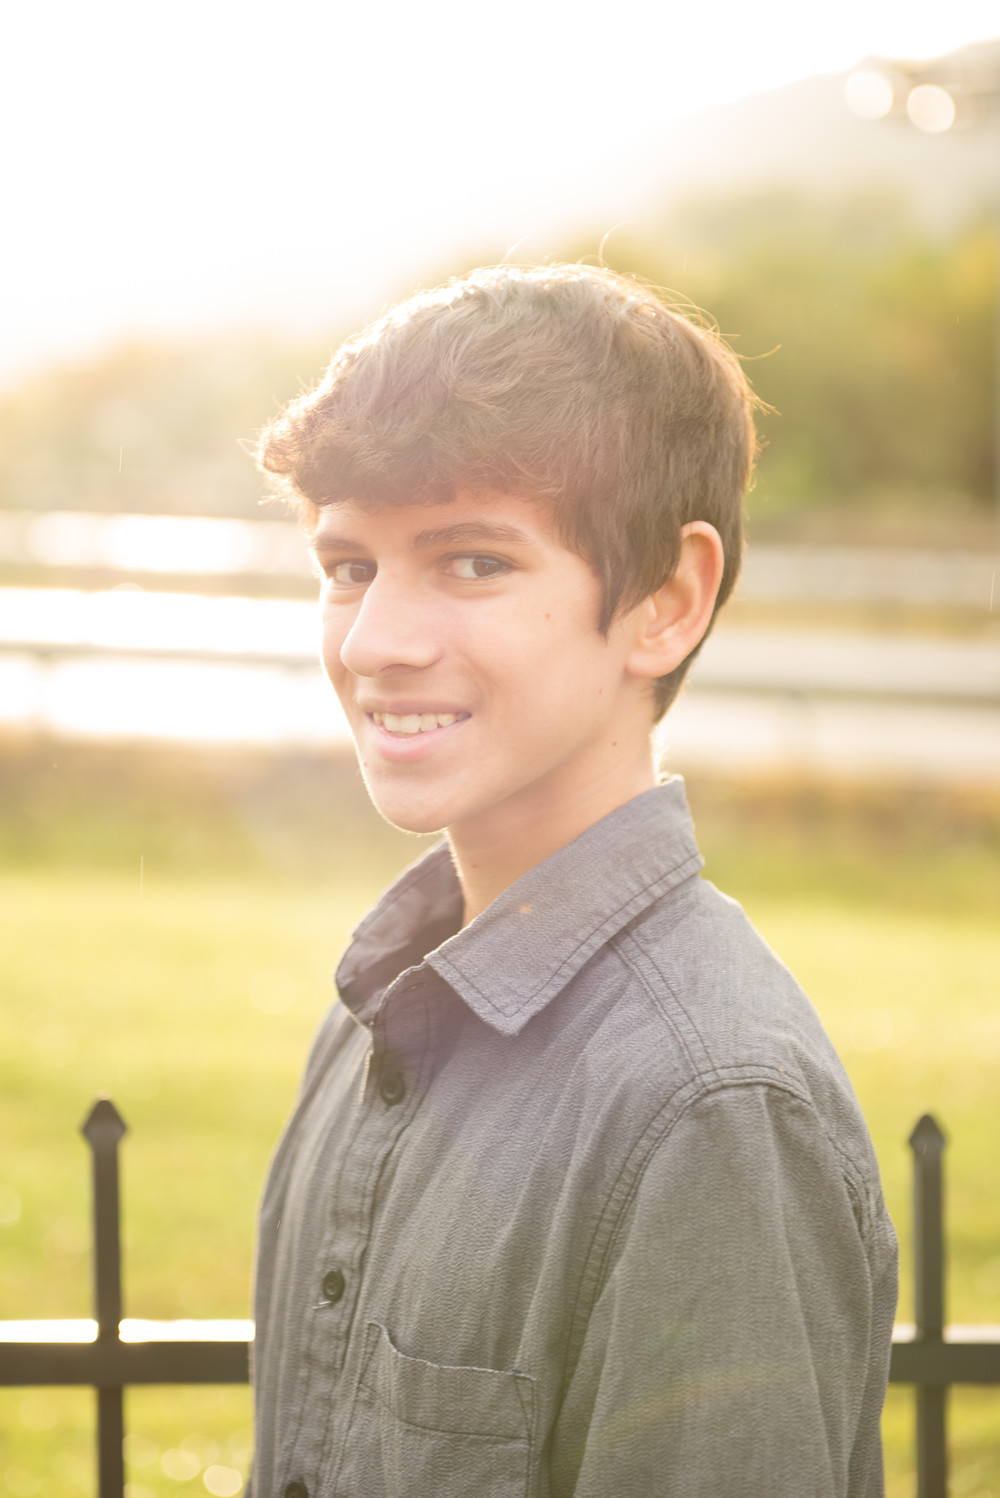 A high school senior portrait in bright sunlight during his photoshoot near Pittsburgh.